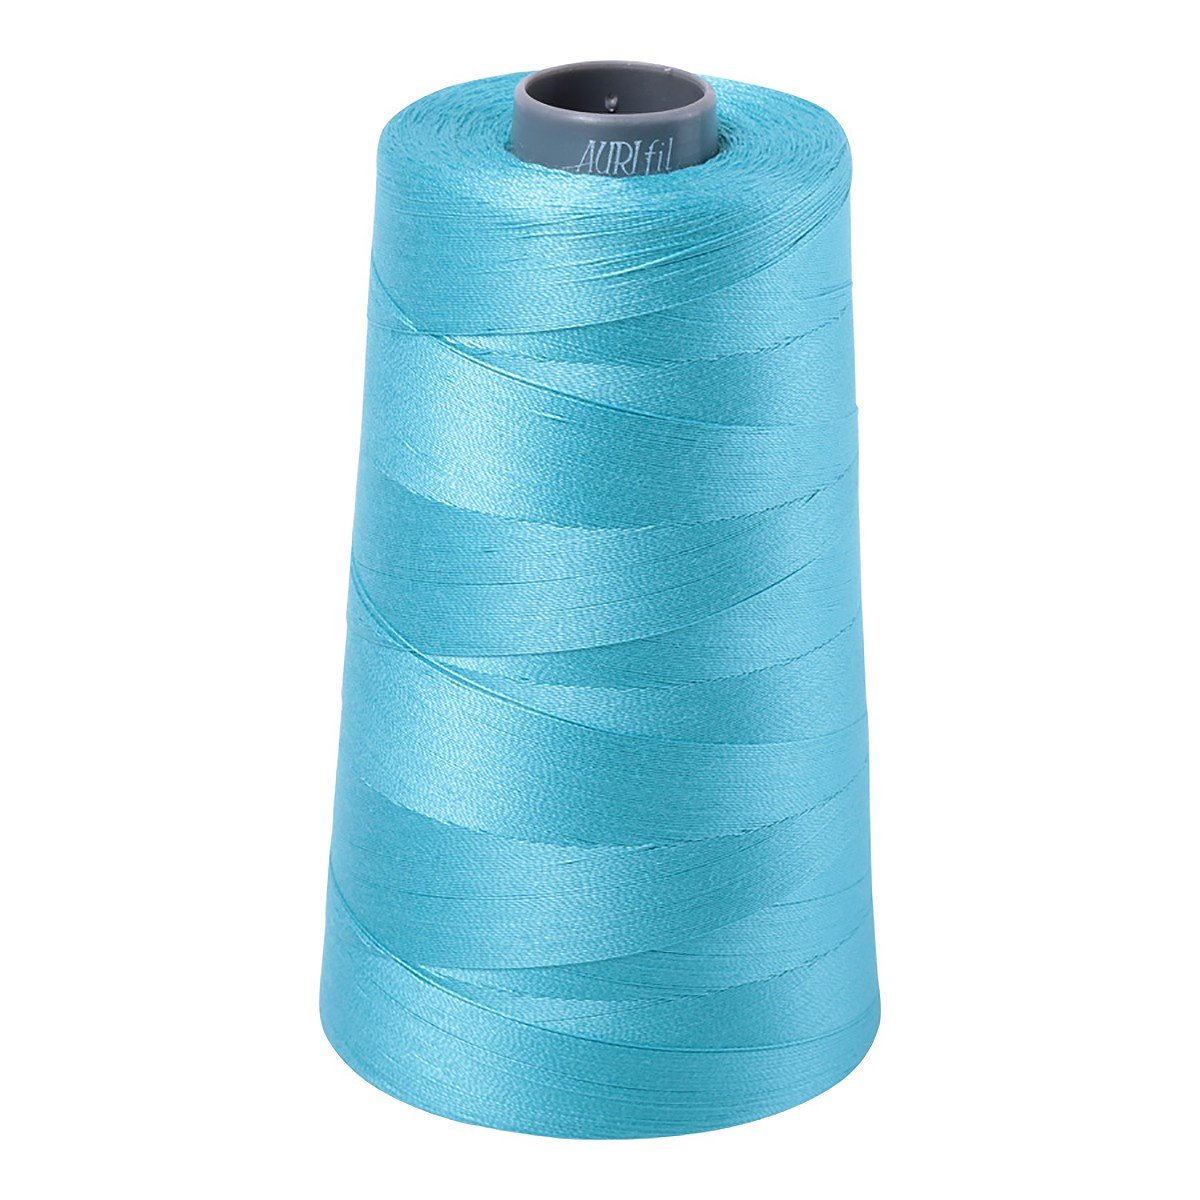 Mako (Cotton) Embroidery Thread 28wt 3609yds Bright Turquoise